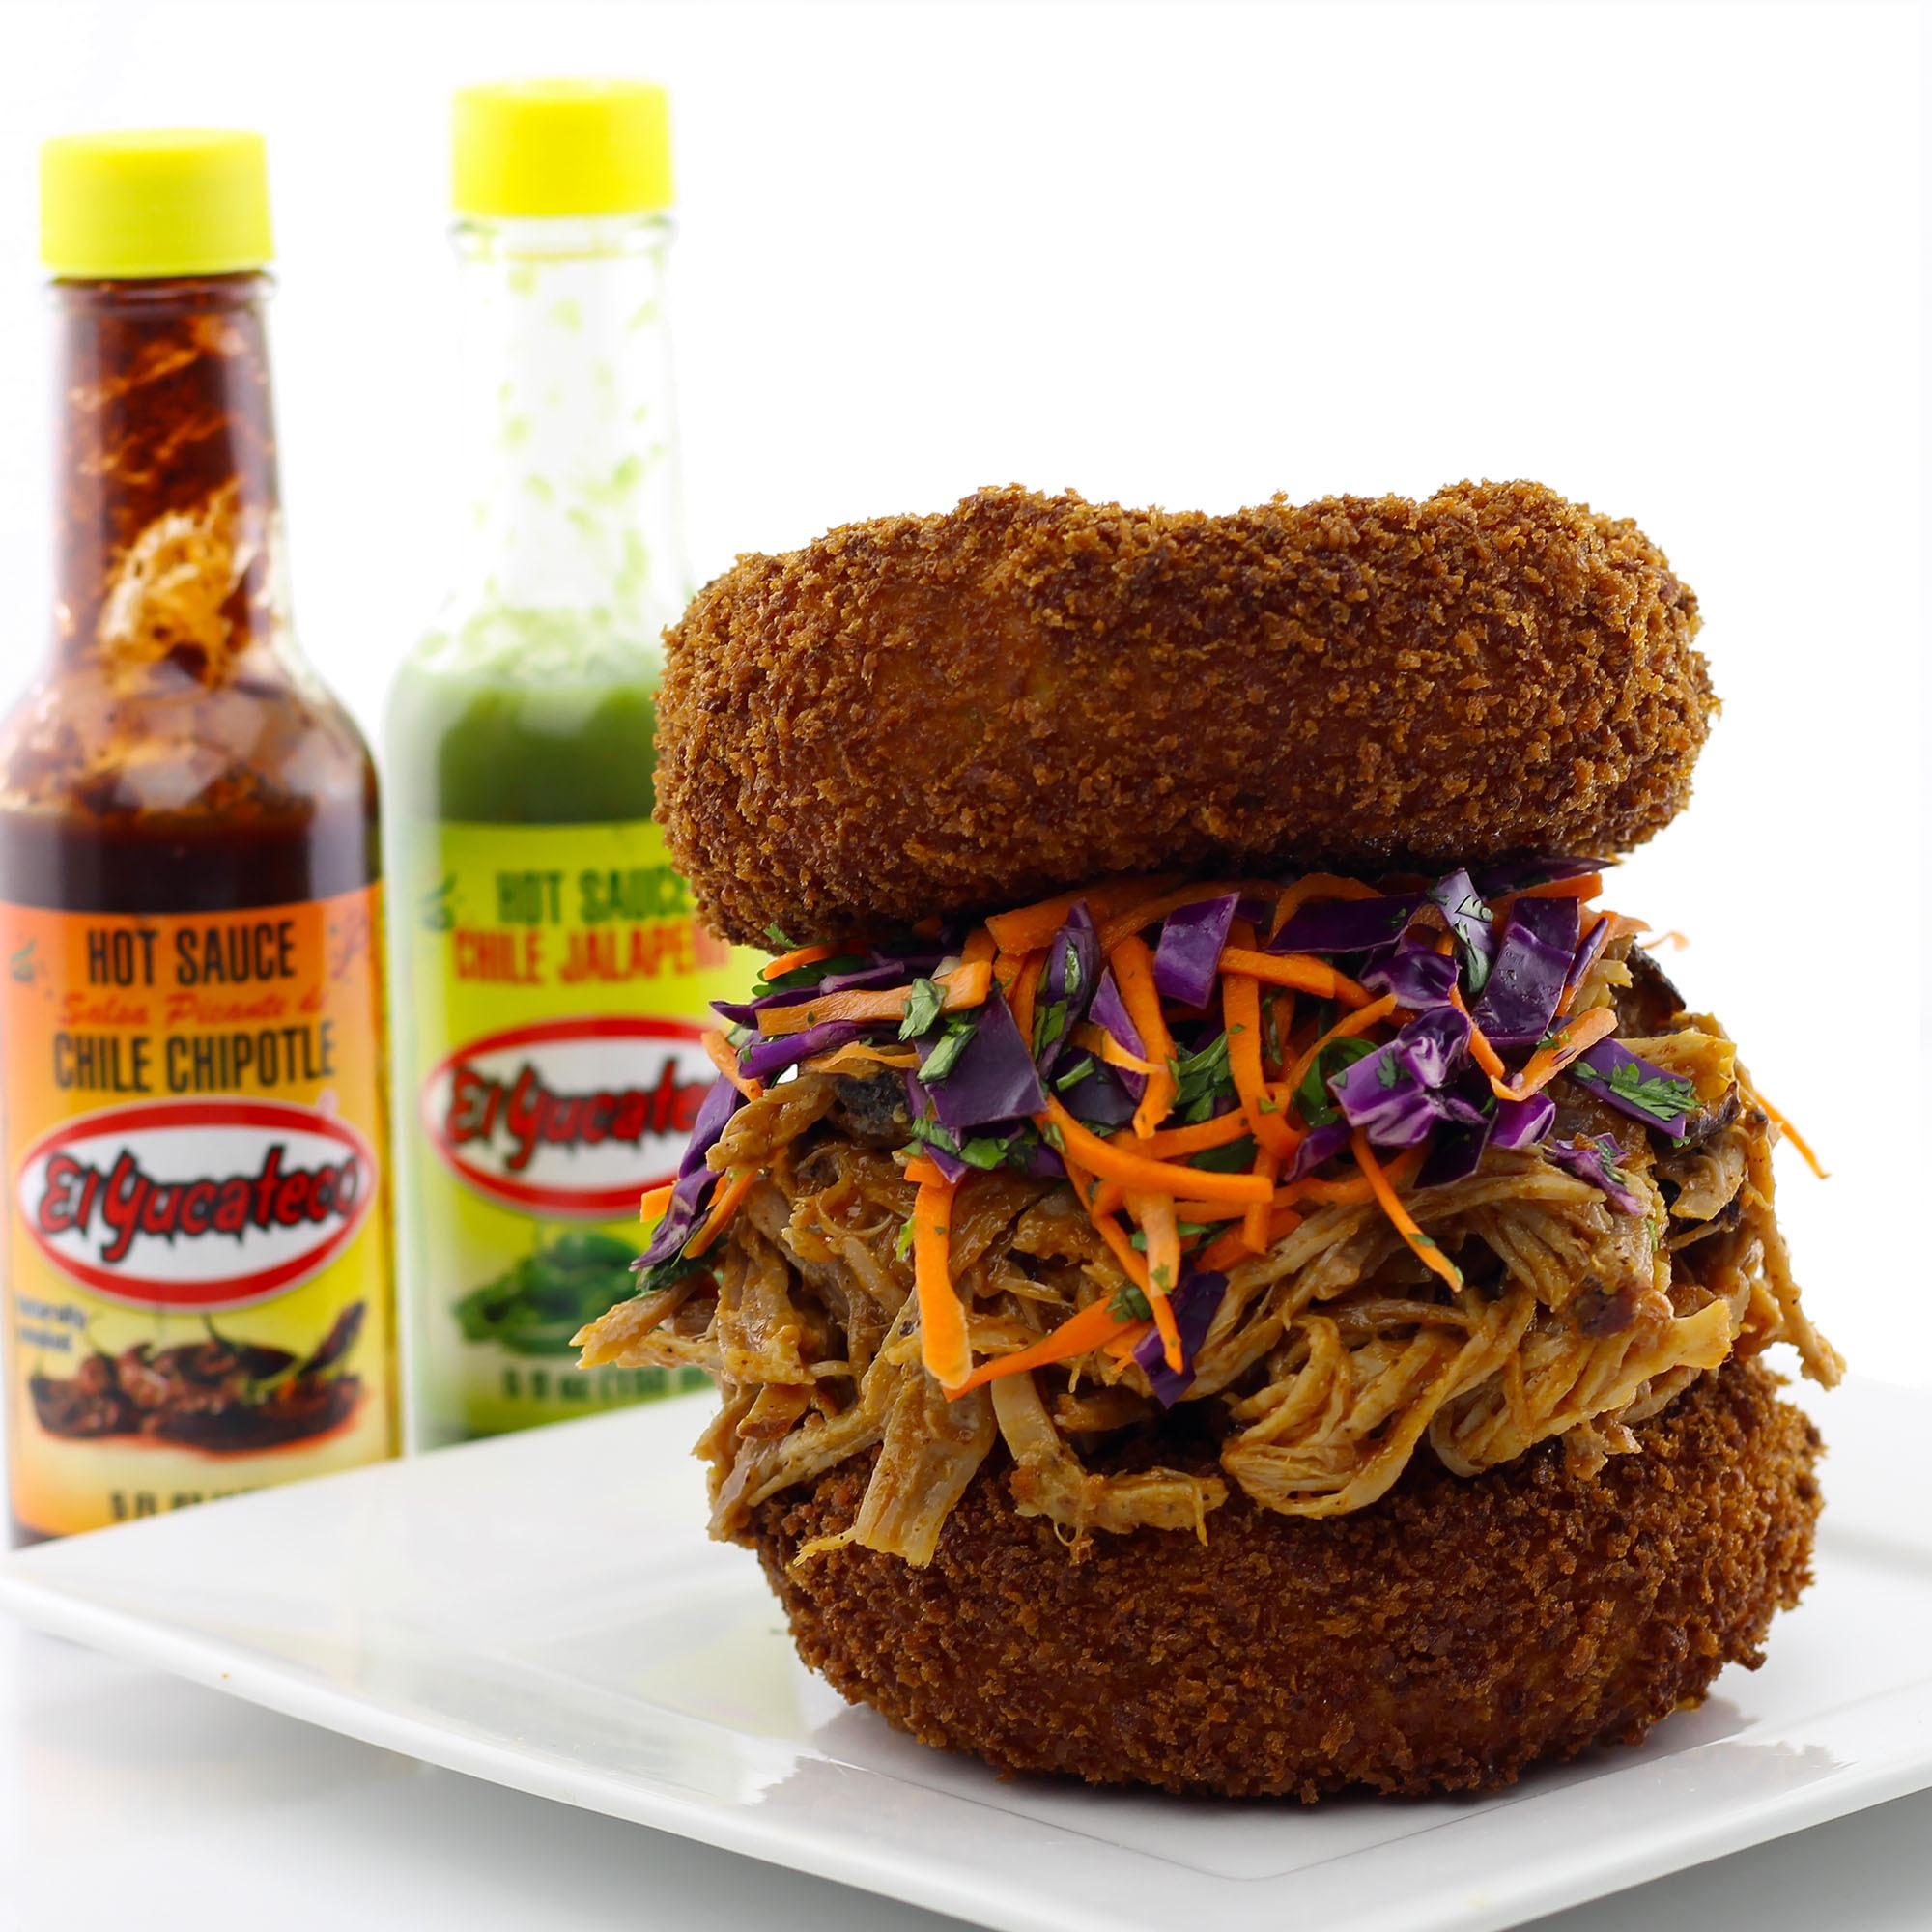 Pulled Pork Sandwiches With Deep Fried Macaroni and Cheese Buns